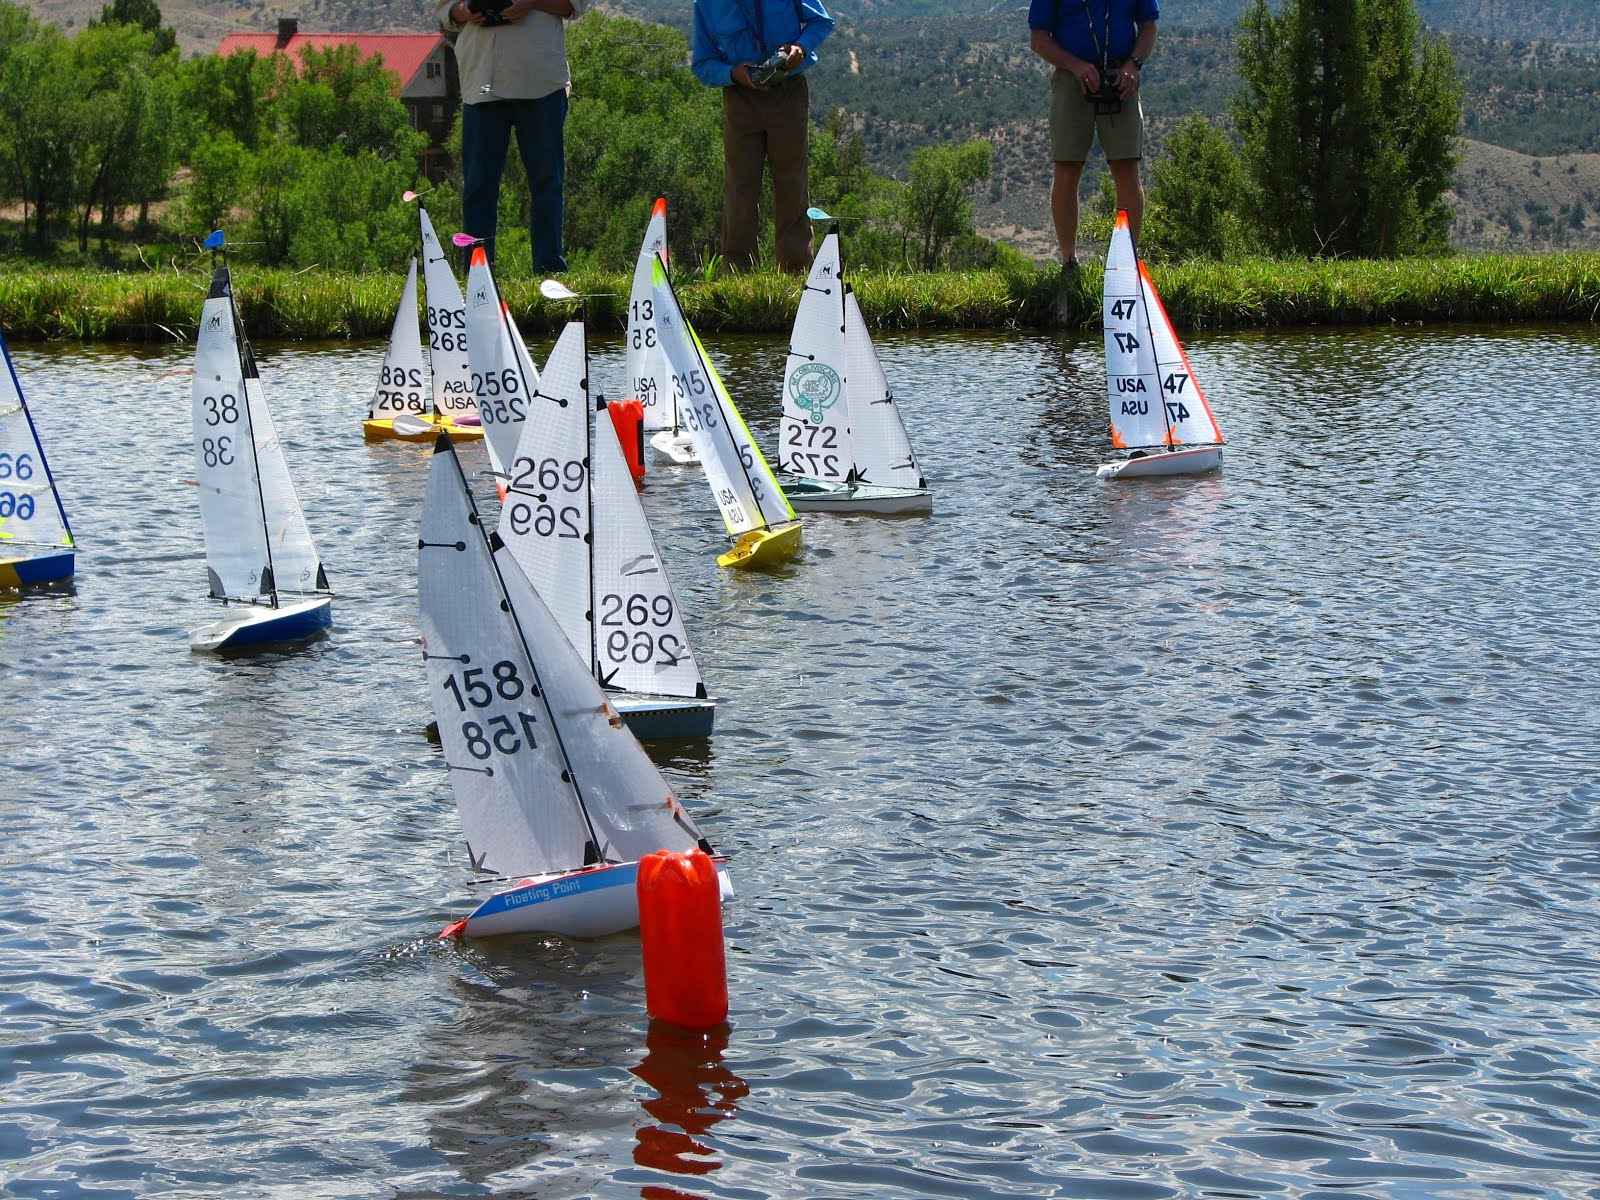 Start line action at the 2015 AMYA Region 5 Championship Regatta